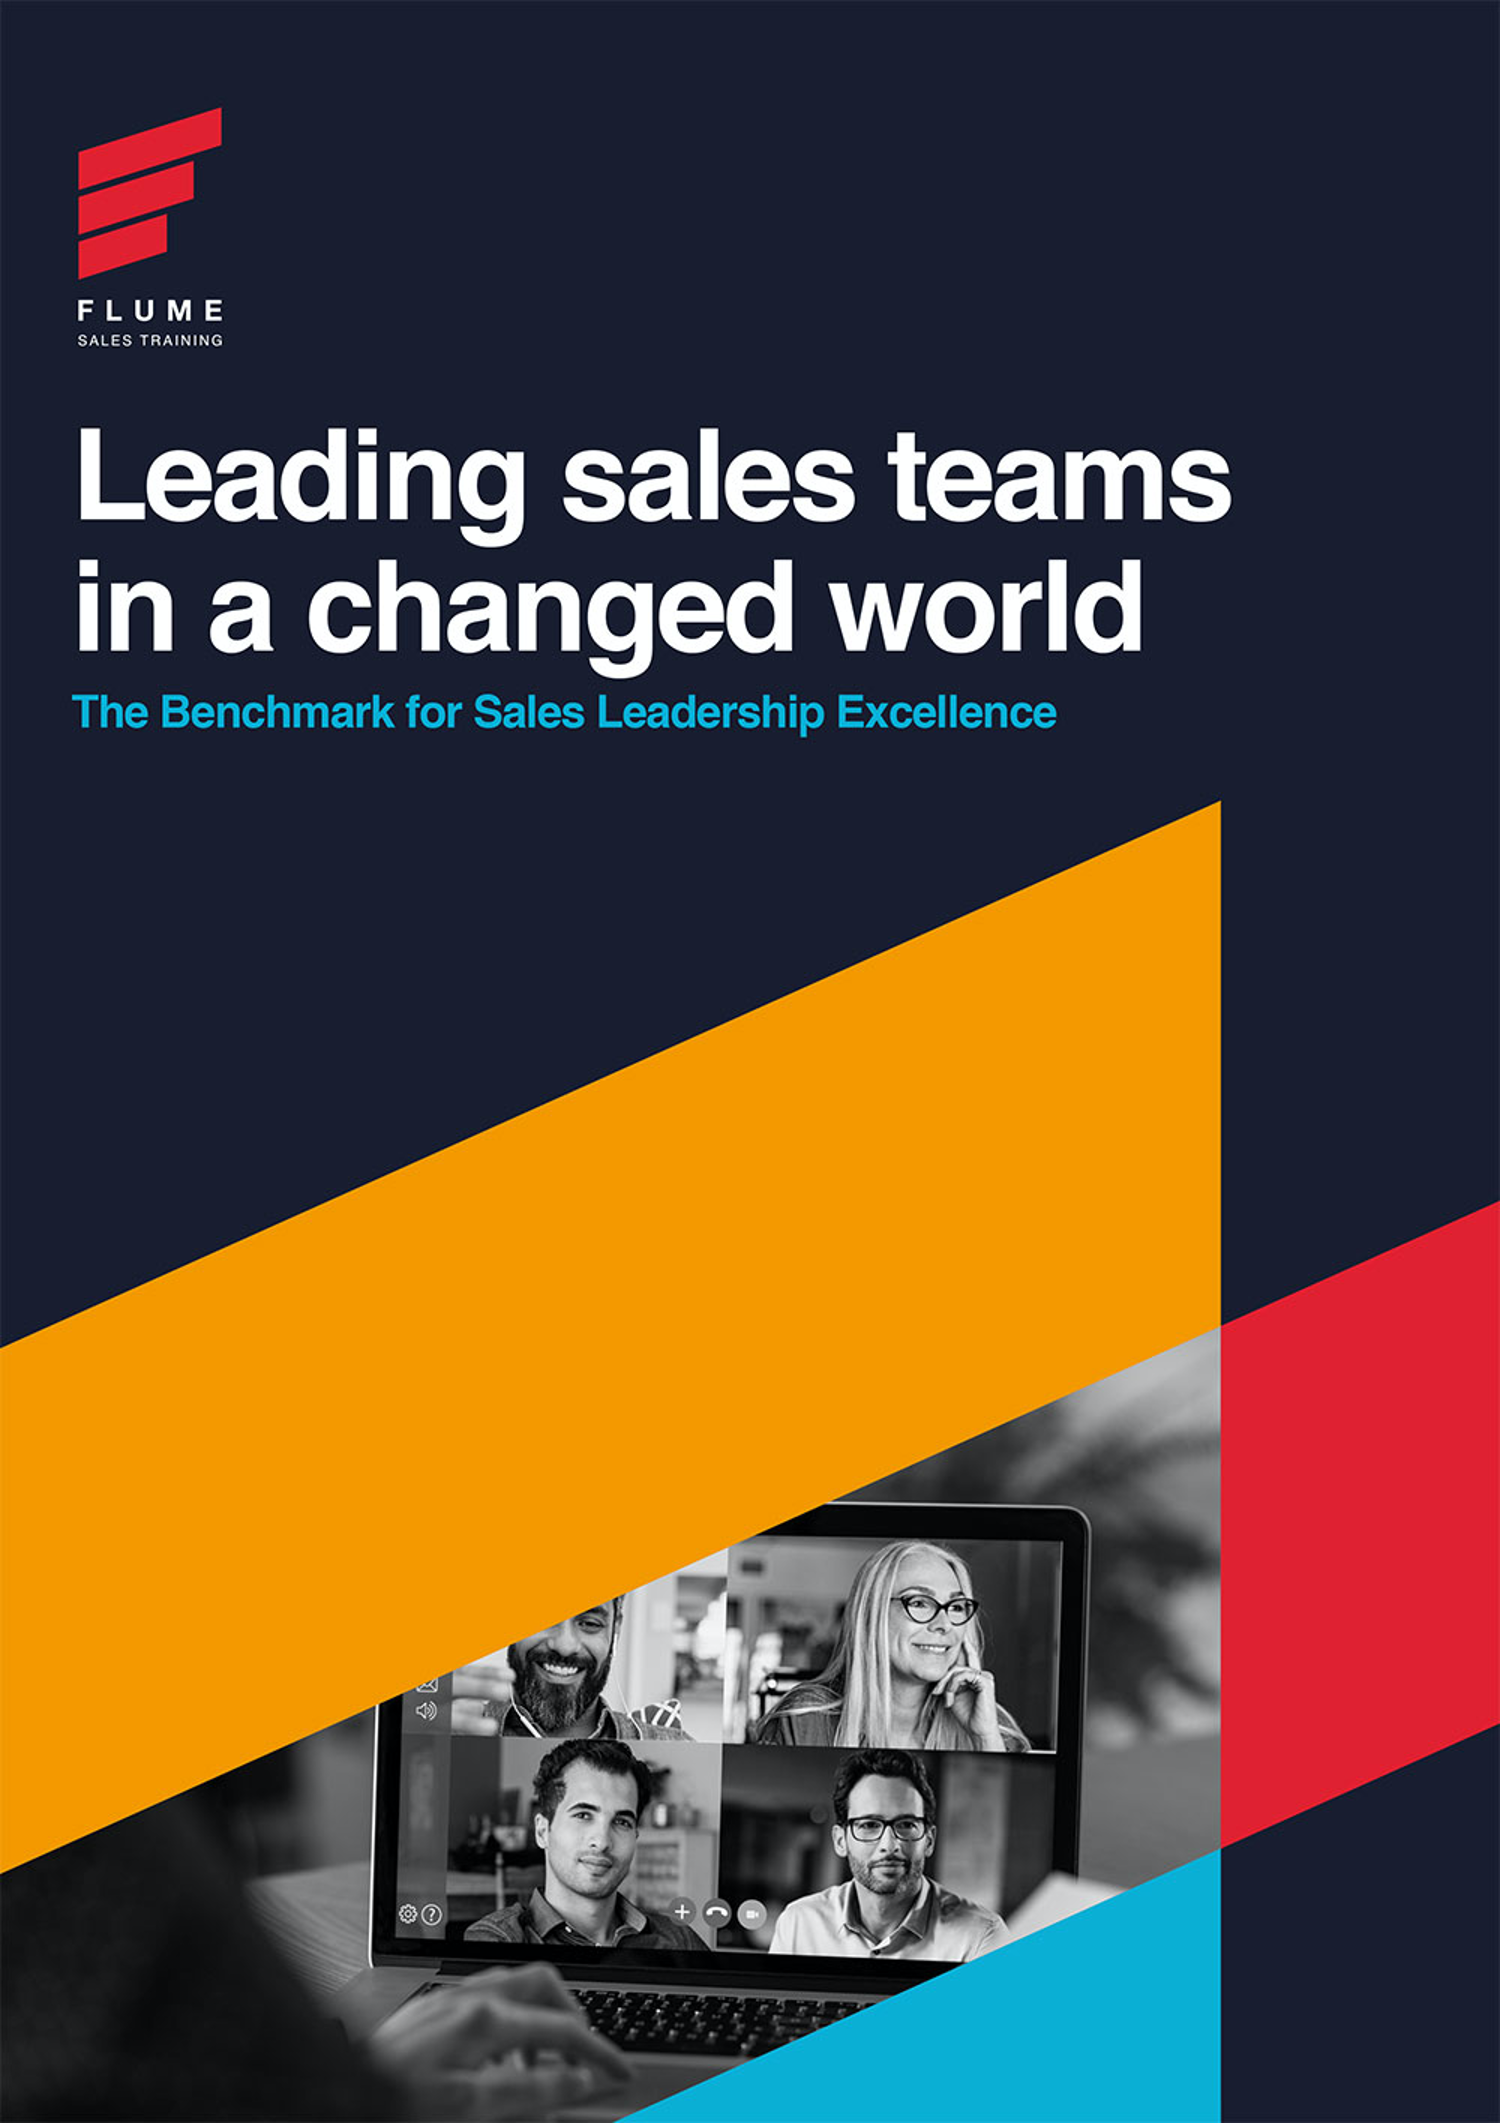 The Benchmark for Leading Sales Teams in a Changed World